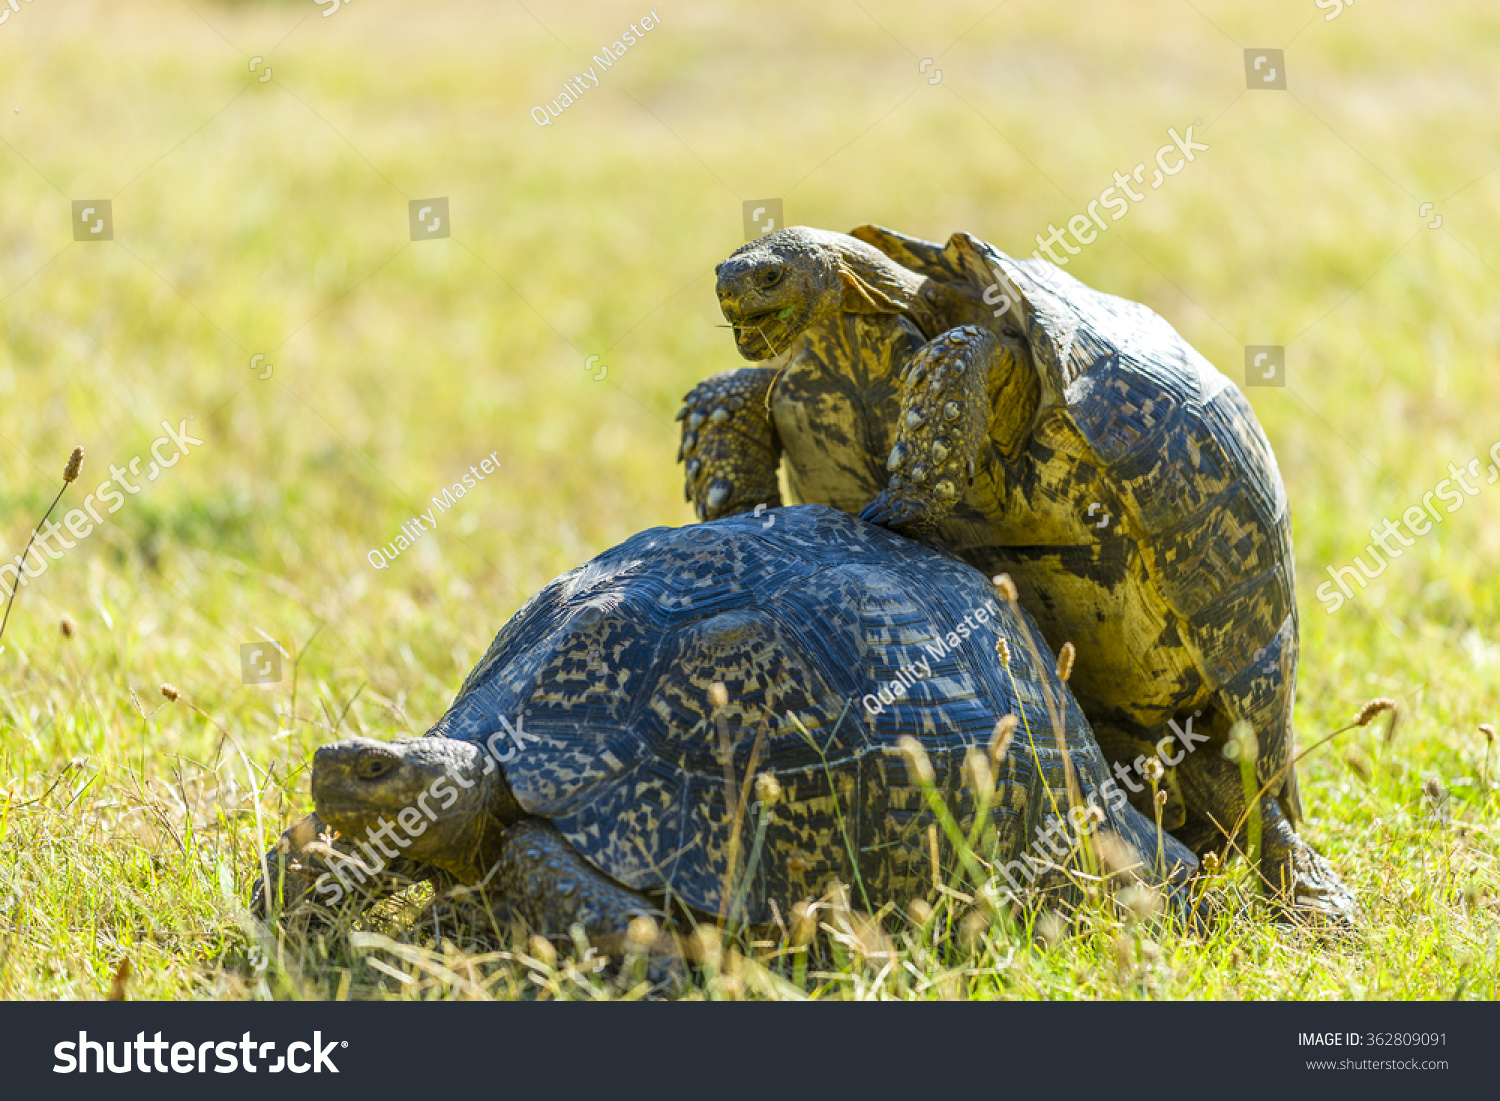 Picture Of A Male African Spur Tortoises Penis - Free Porn -6208